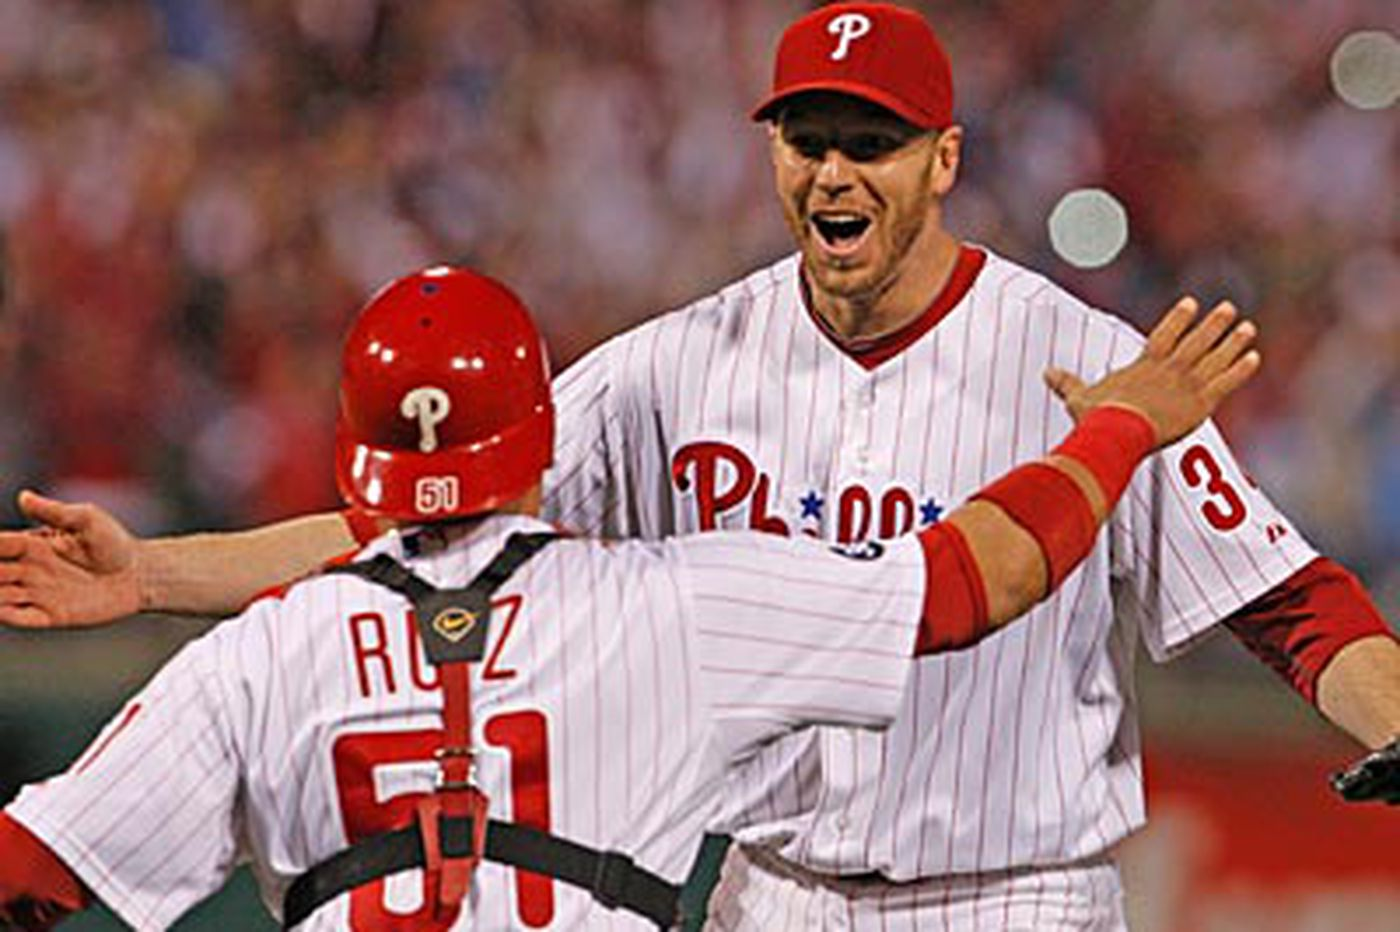 Not even Halladay was prepared for no-hitter